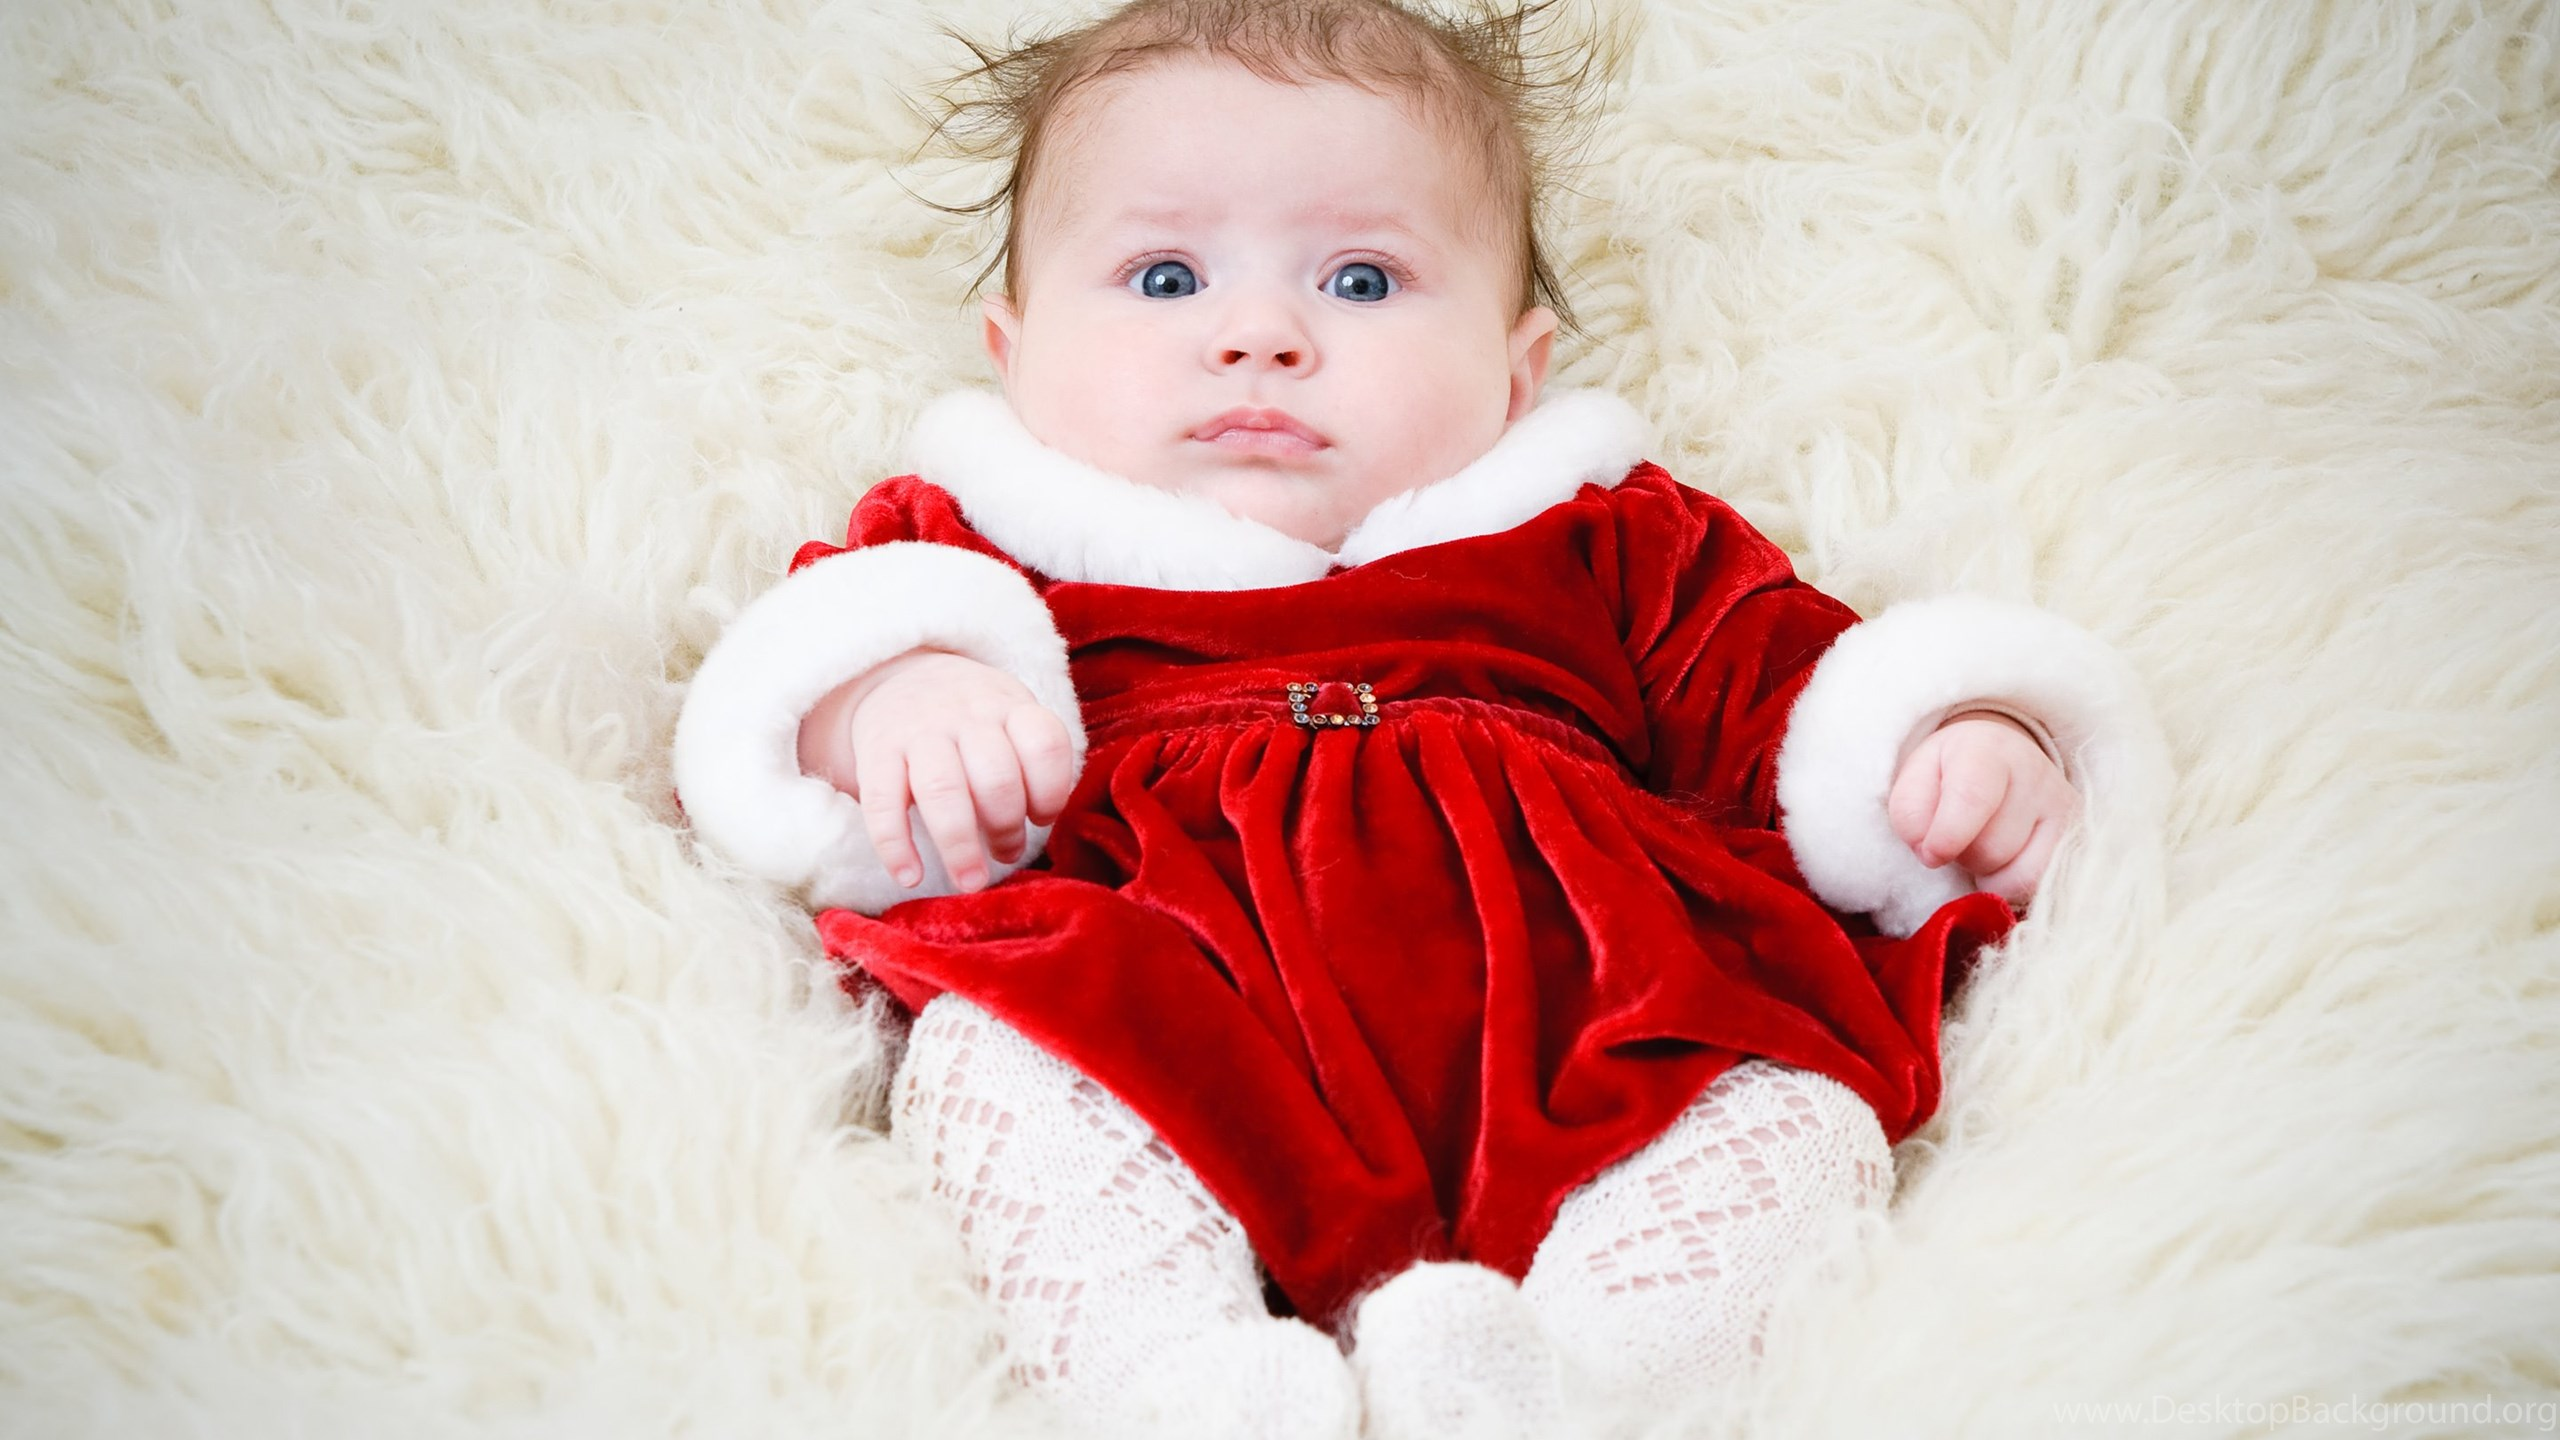 Cute Baby Hd Wallpapers Collection 41 Desktop Background